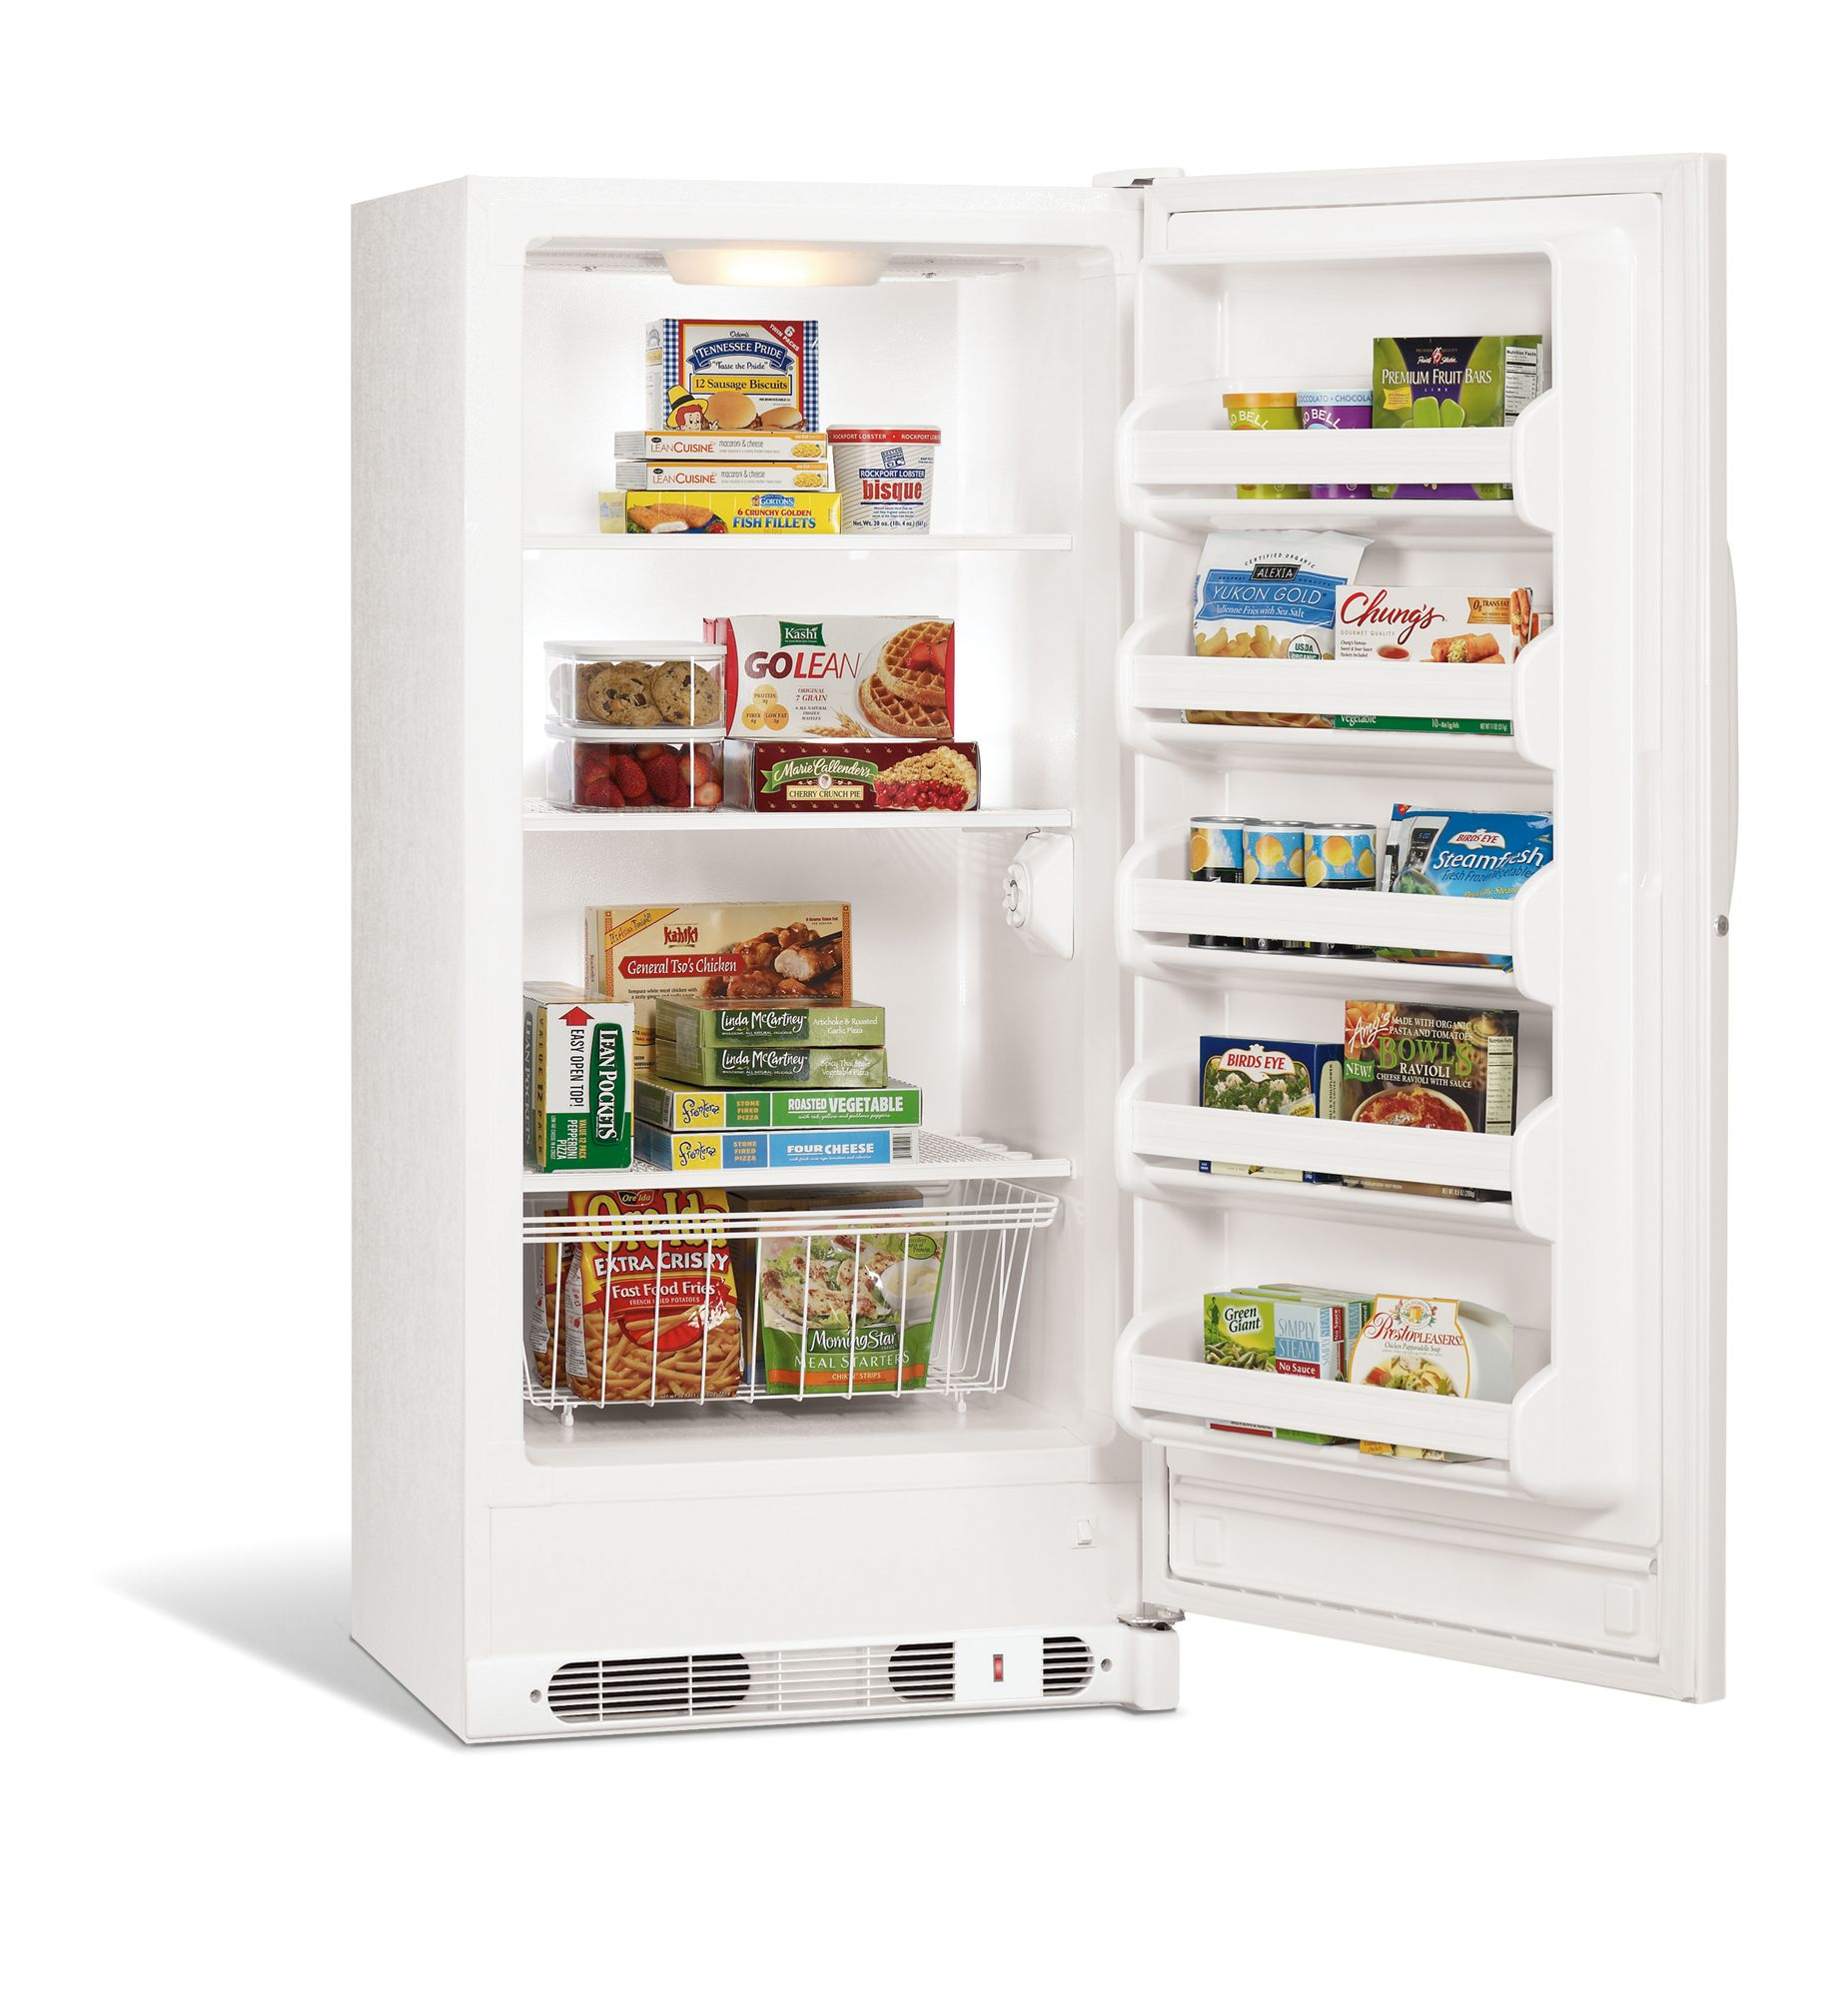 Frigidaire 14.1 cu. ft. Upright Freezer